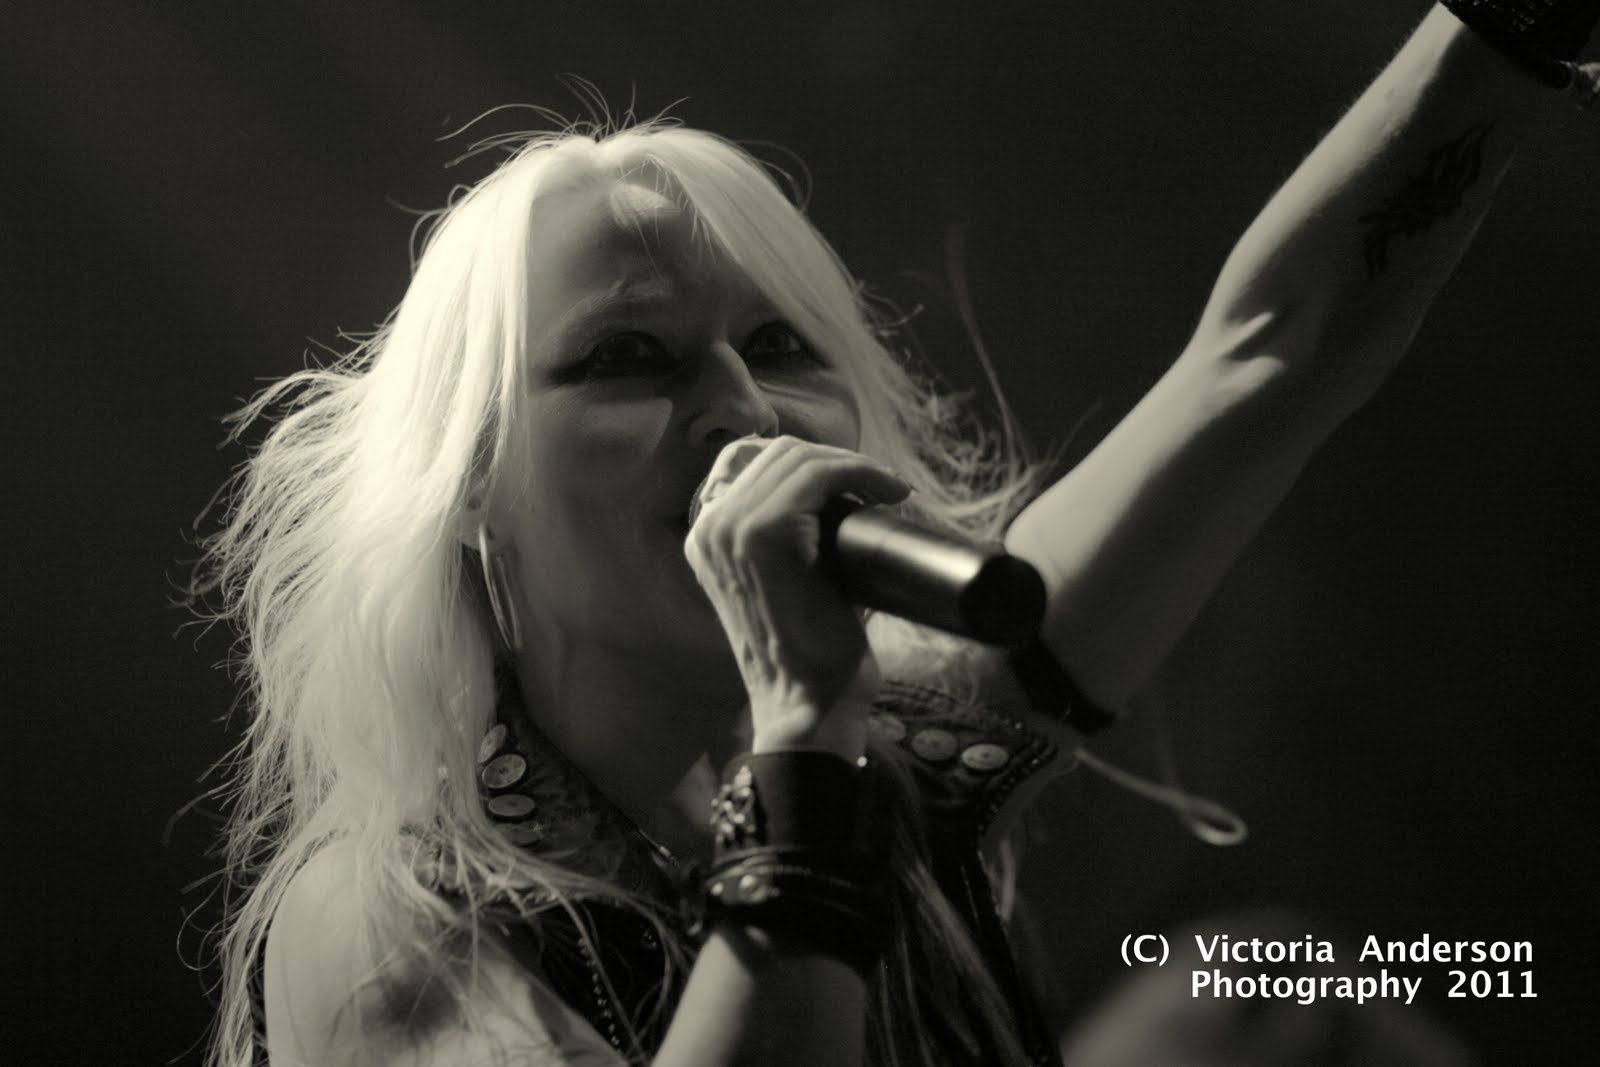 Doro, at the Gramercy in NYC (2011)